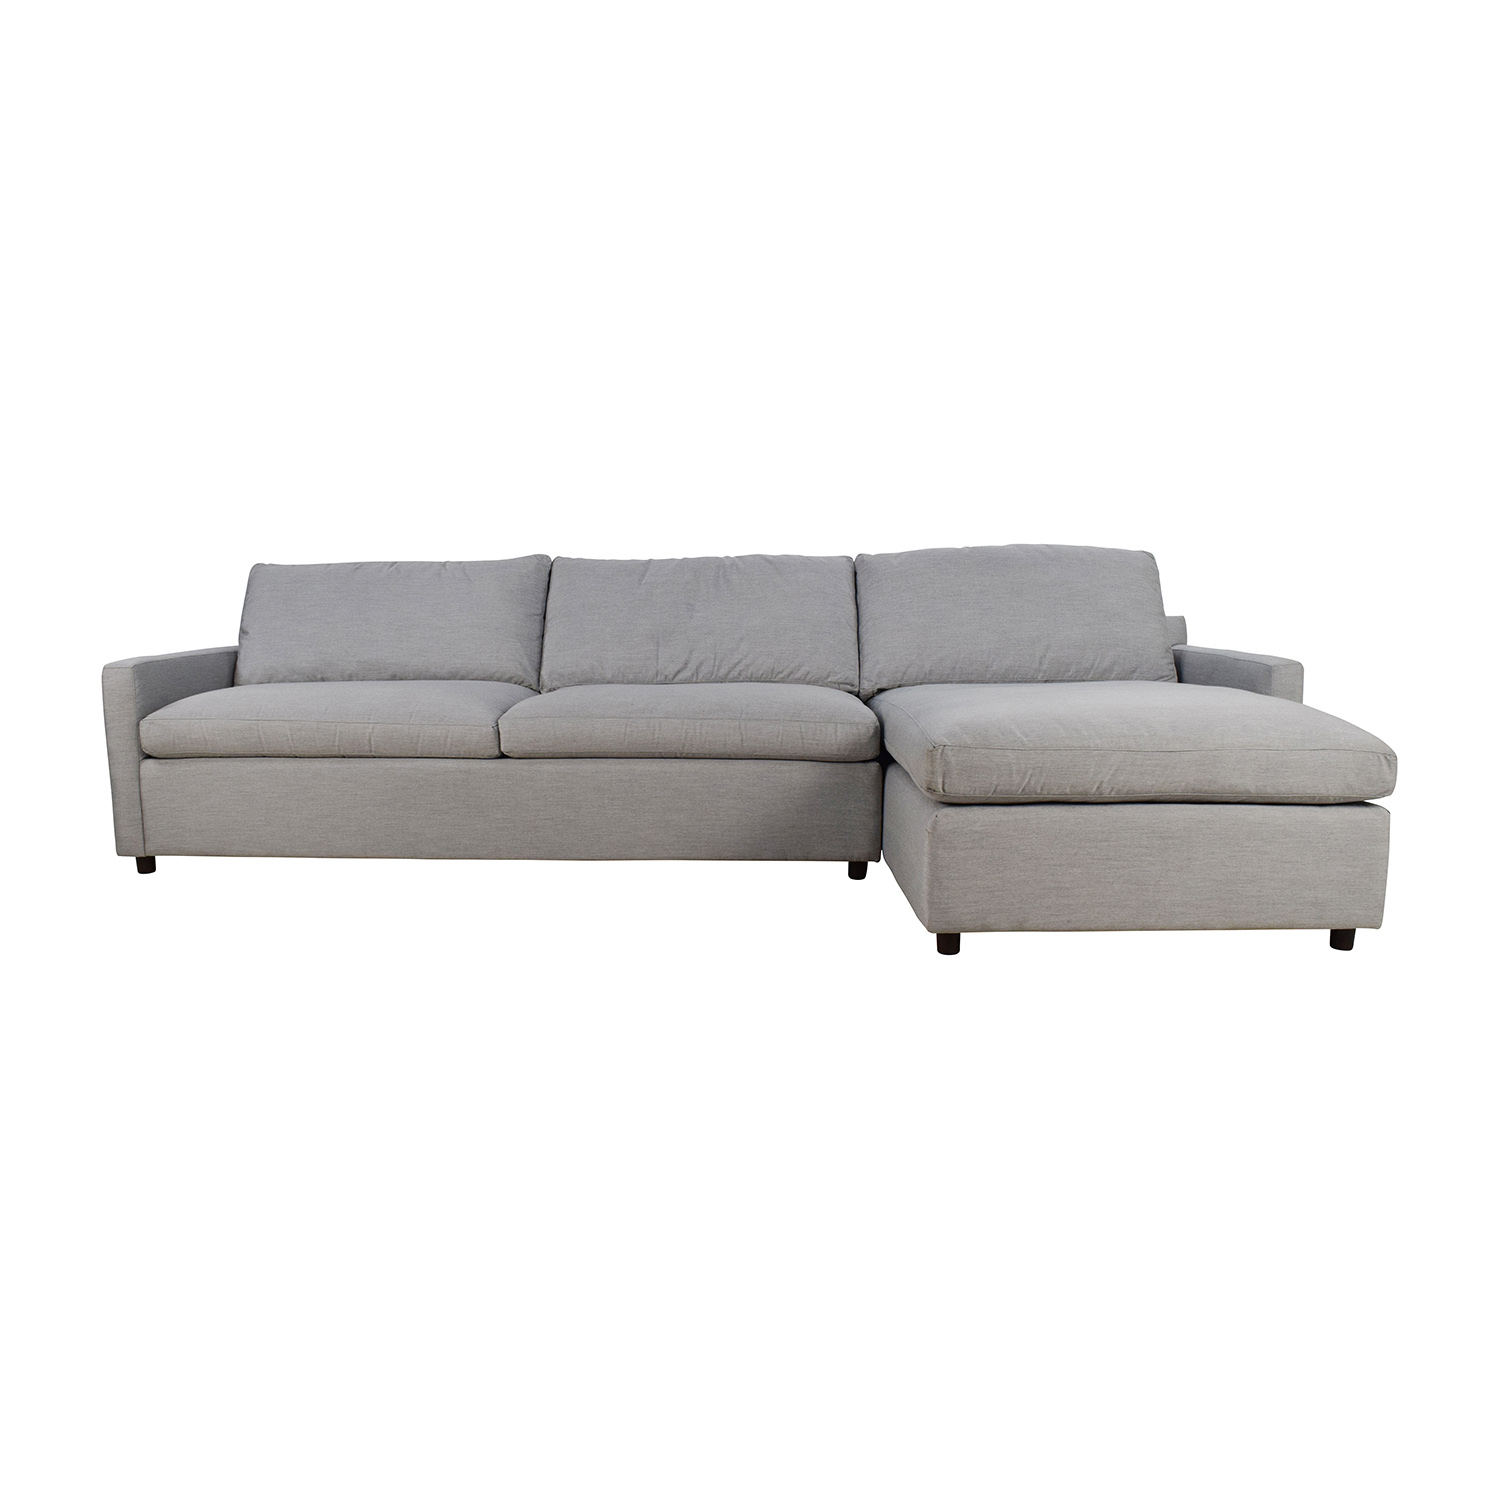 ABC Carpet and Home ABC Carpet & Home Cobble Hill Lucali Sectional Sofas